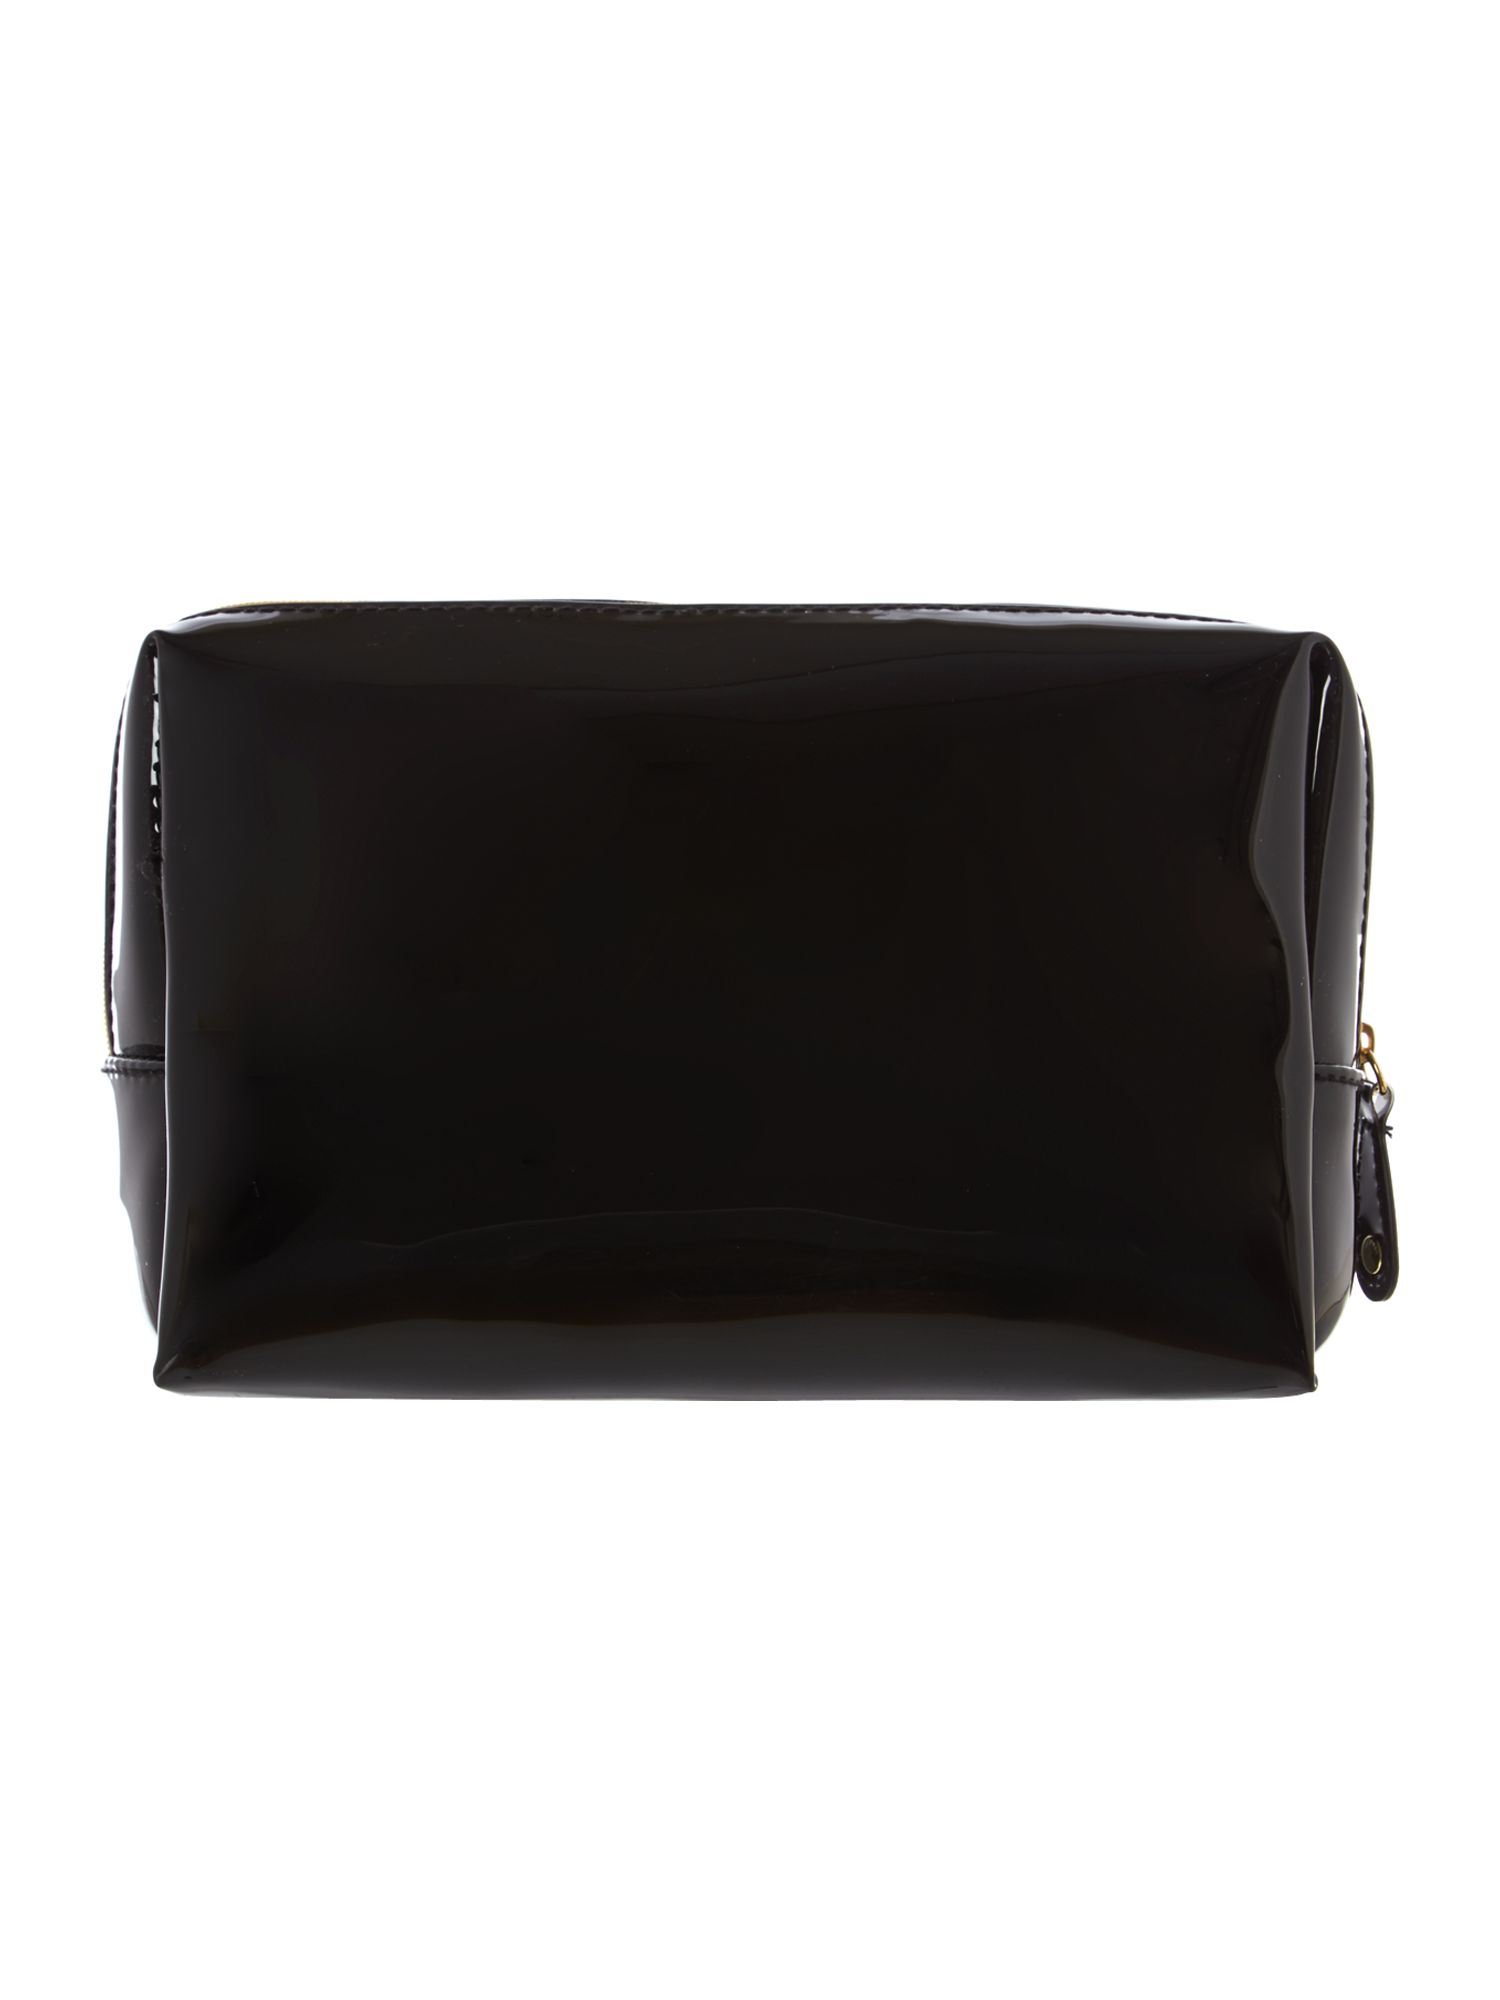 Large black cosmetics bag